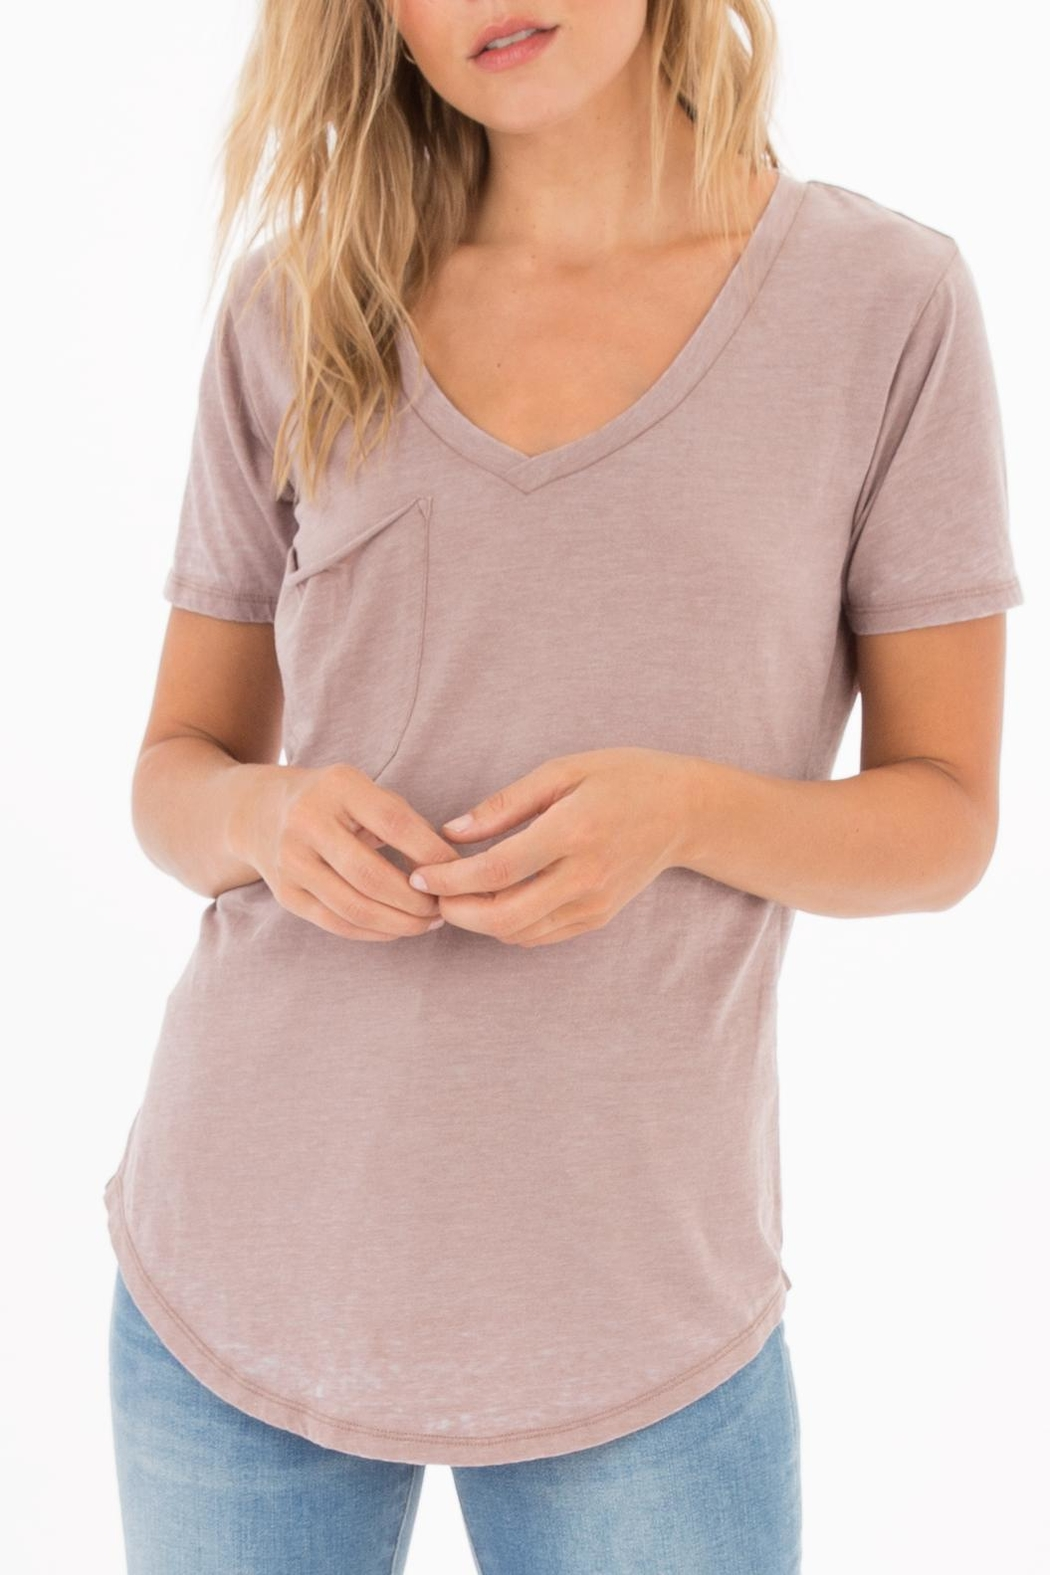 Apricot Lane Pocket Tee-Taupe/grey - Front Cropped Image